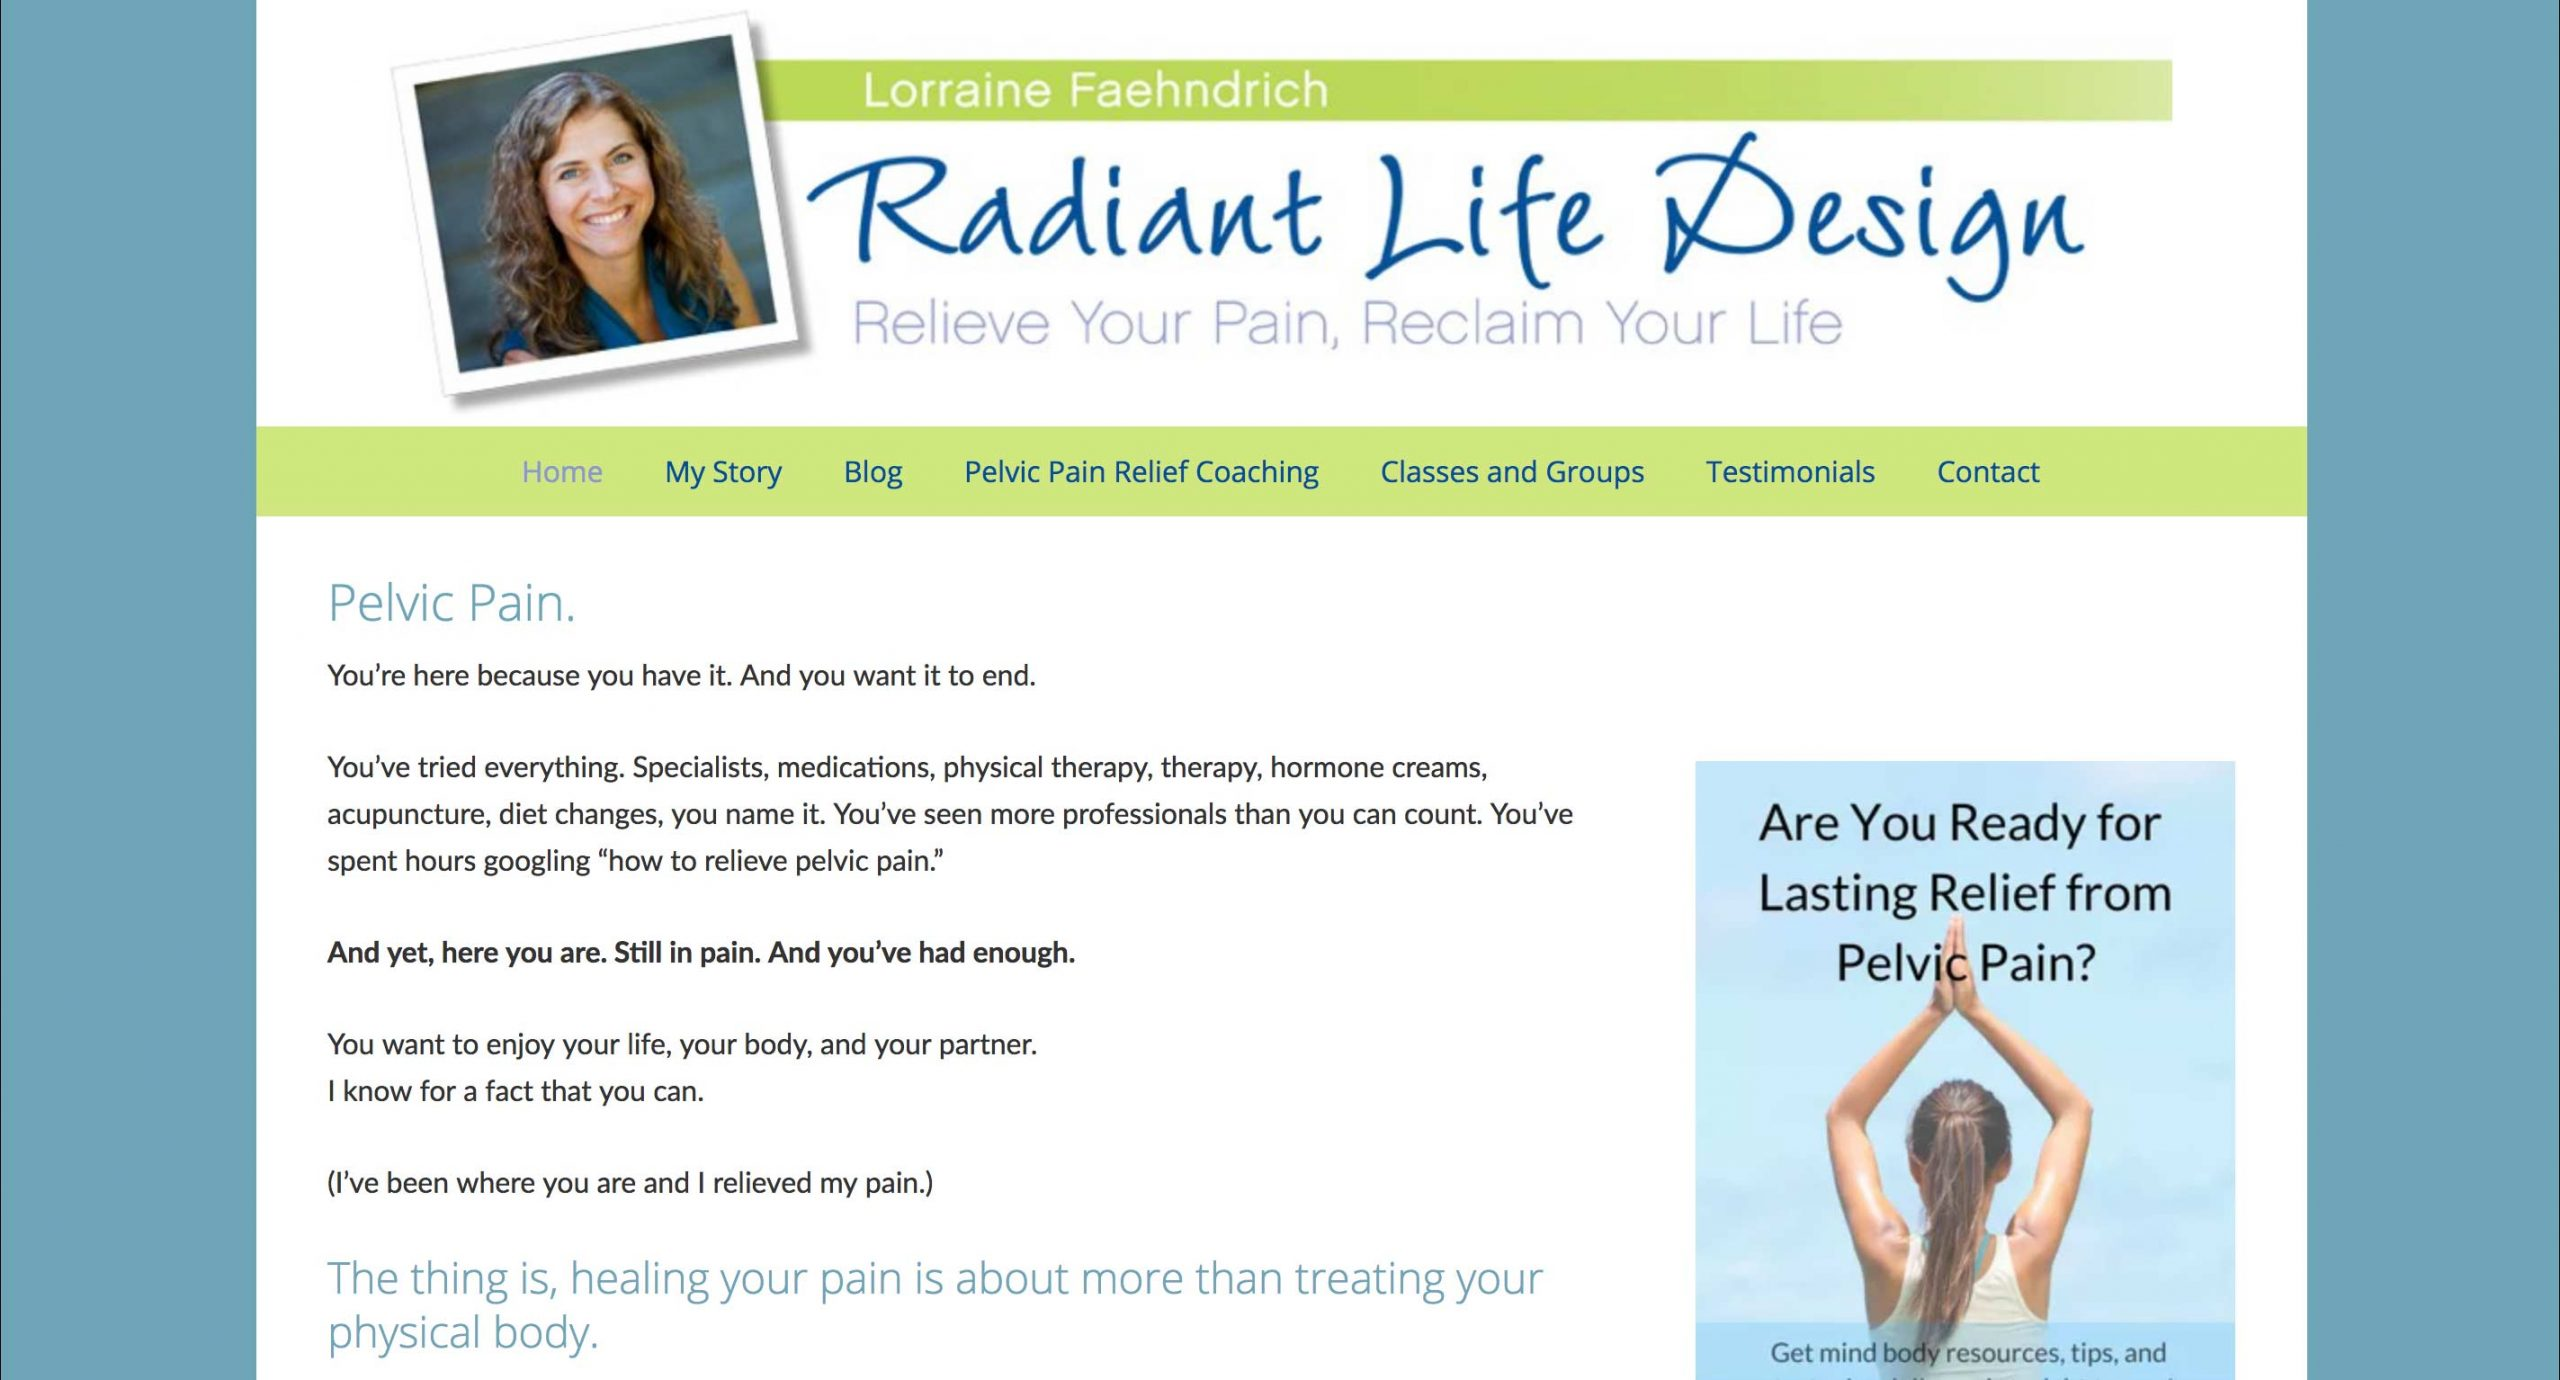 Radiant Life Design - Mody Body approach to healing vulvodynia